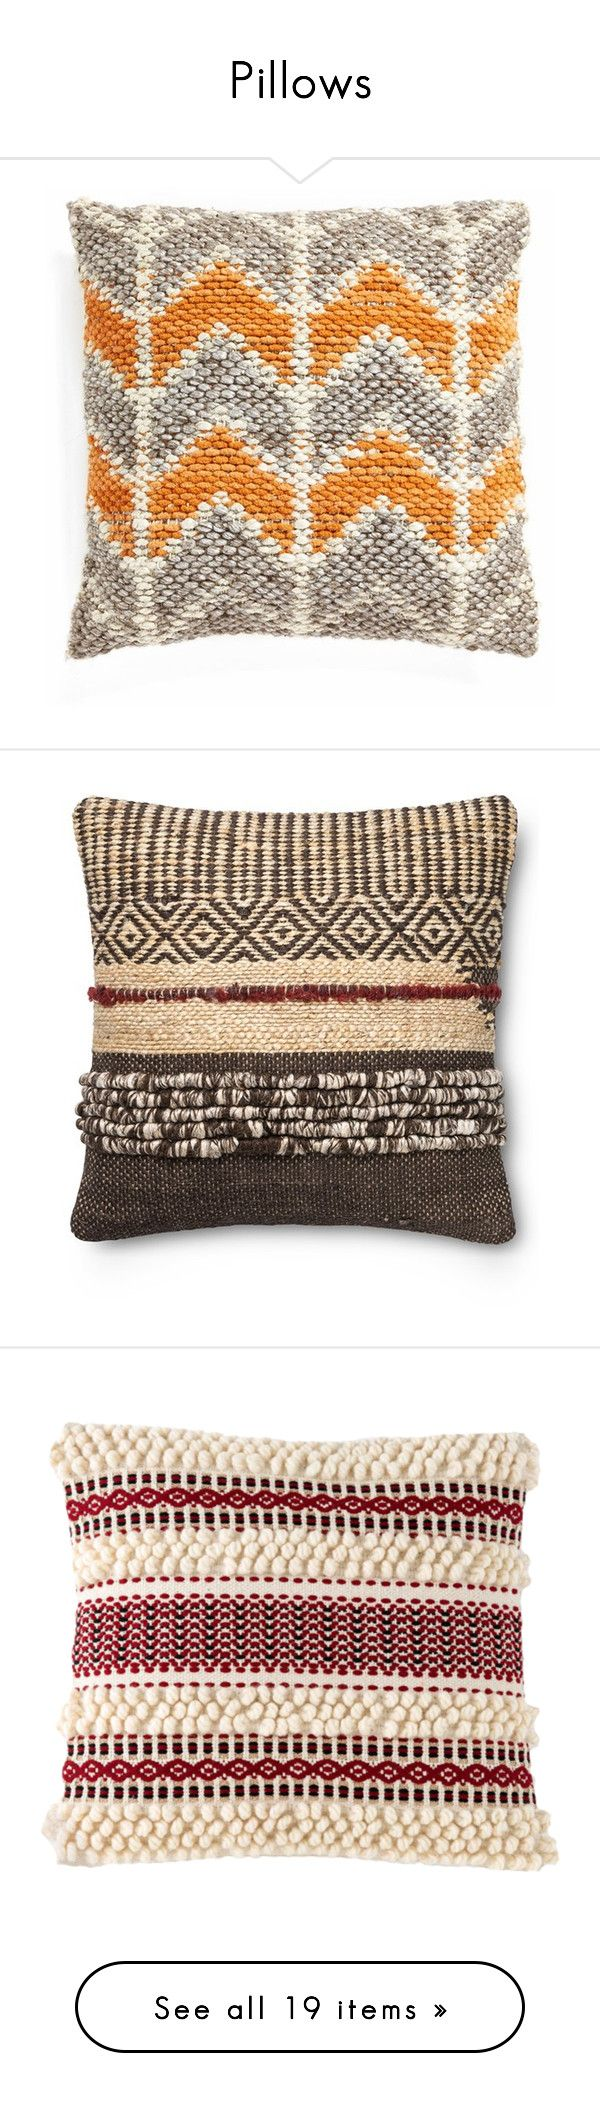 Shop home decor chevron stripes pillow from shop home decor -  Pillows By Camilika Liked On Polyvore Featuring Pillows Home Home Decor